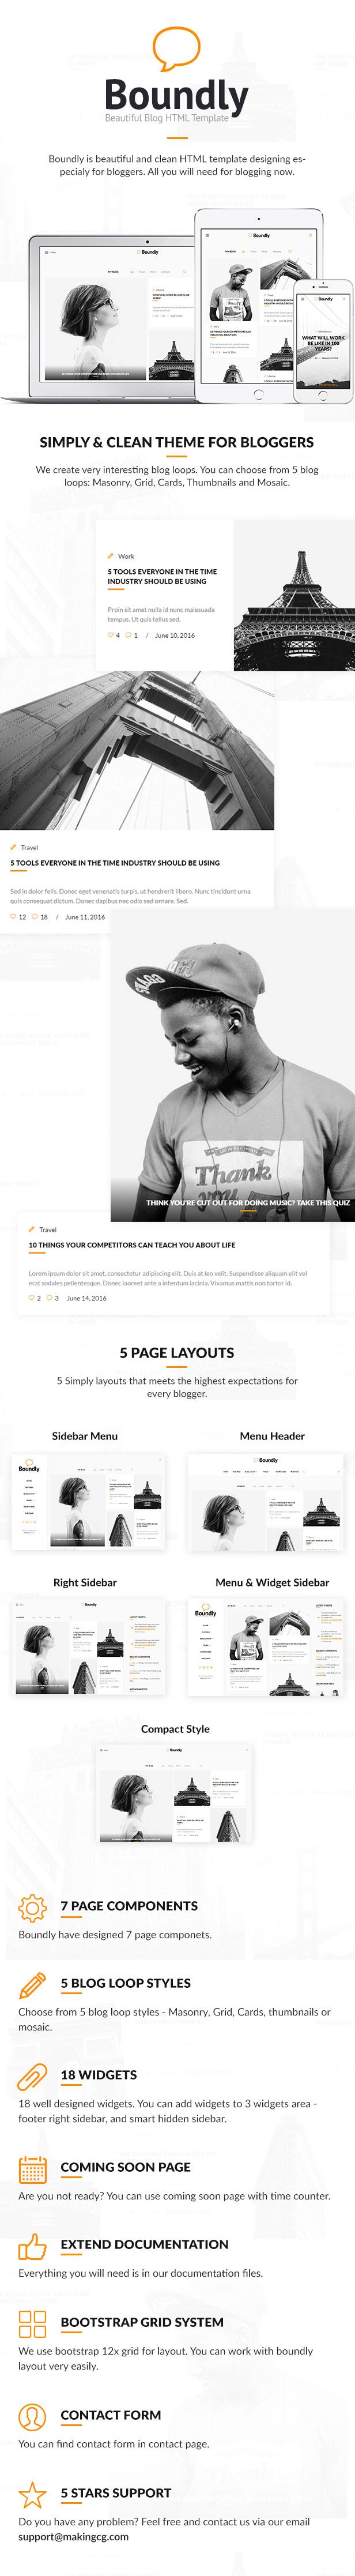 Boundly, HTML Template for Bloggers